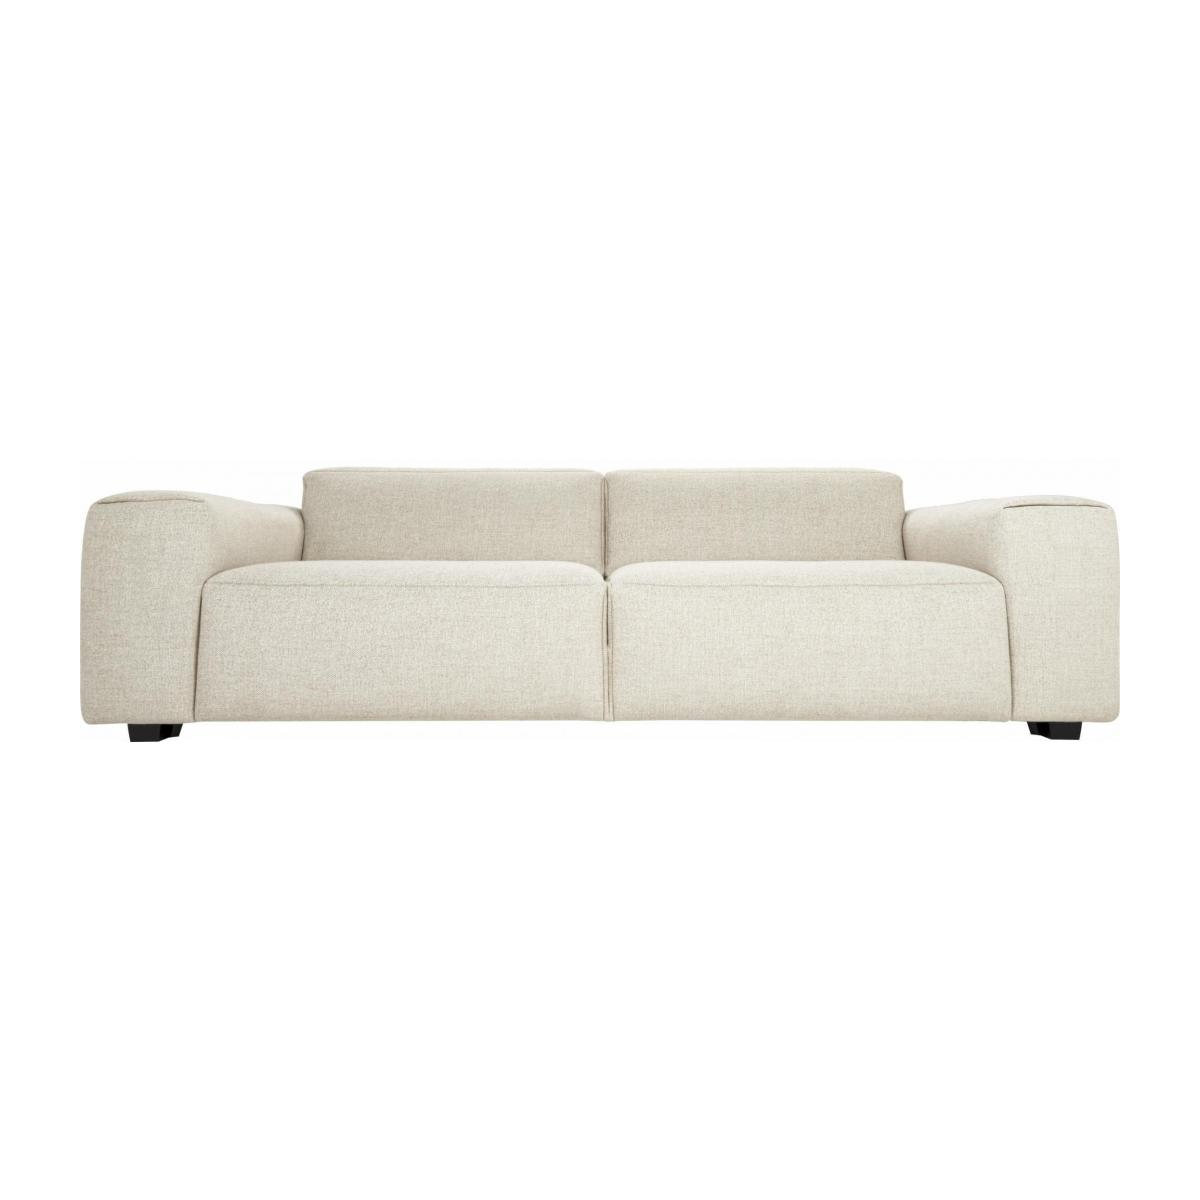 4 seater sofa in Lecce fabric, nature n°1